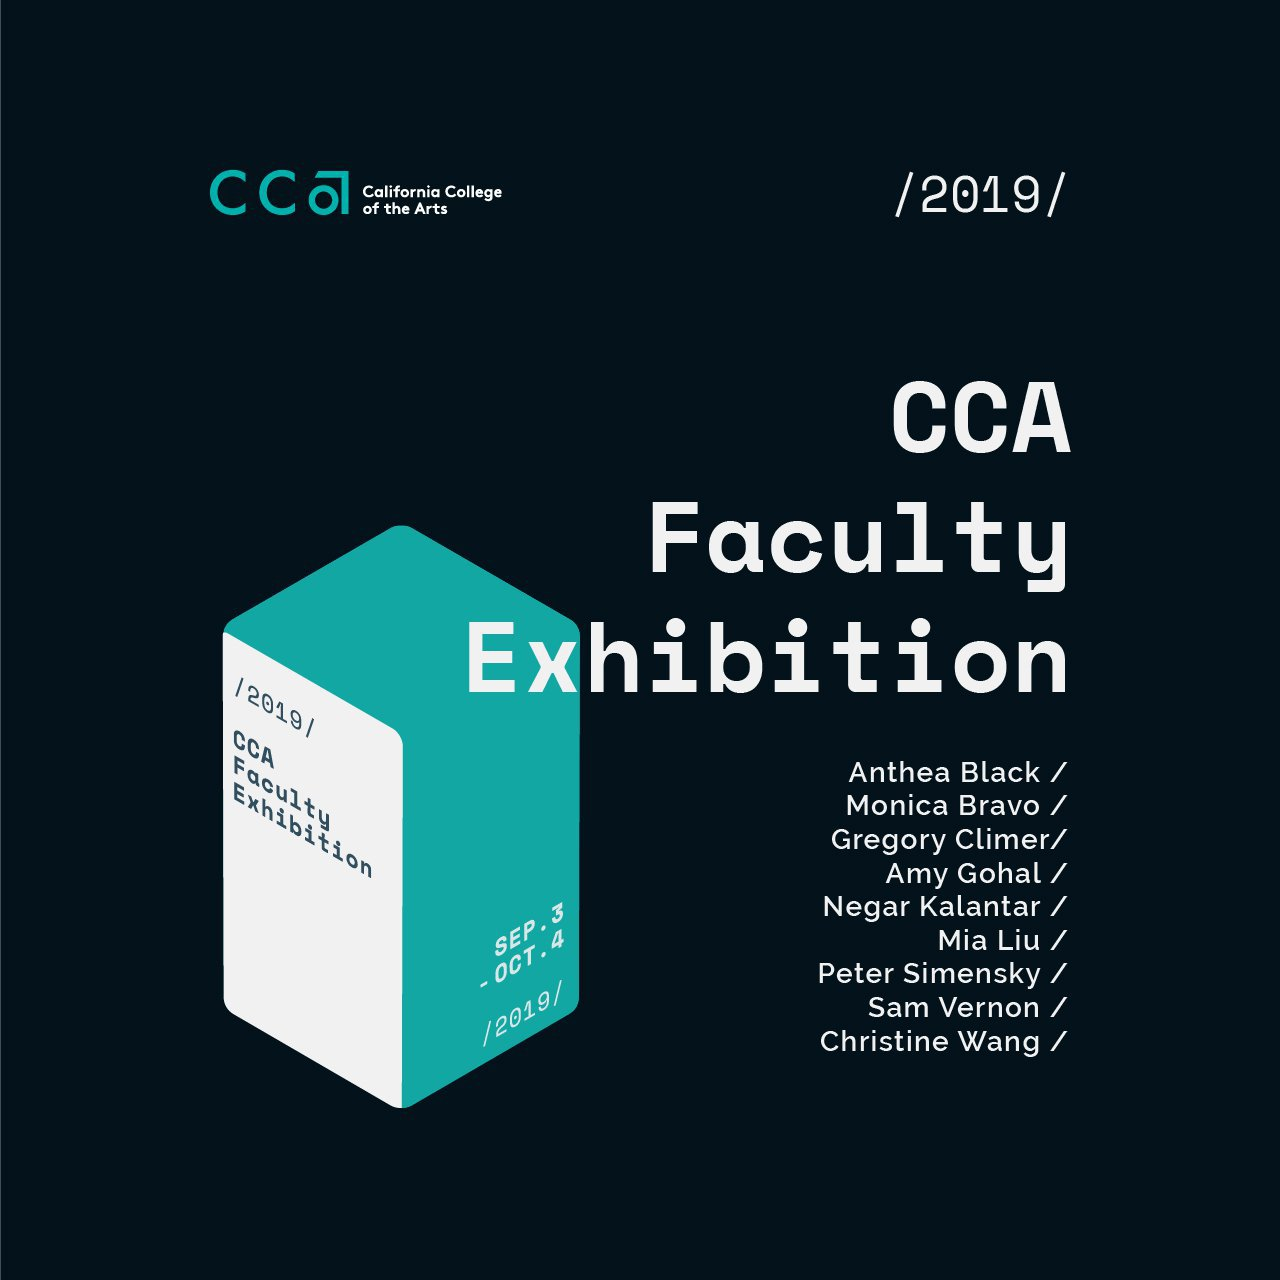 CCA Faculty Exhibition 2019_social media_1280x1280_dark ver copy.jpg